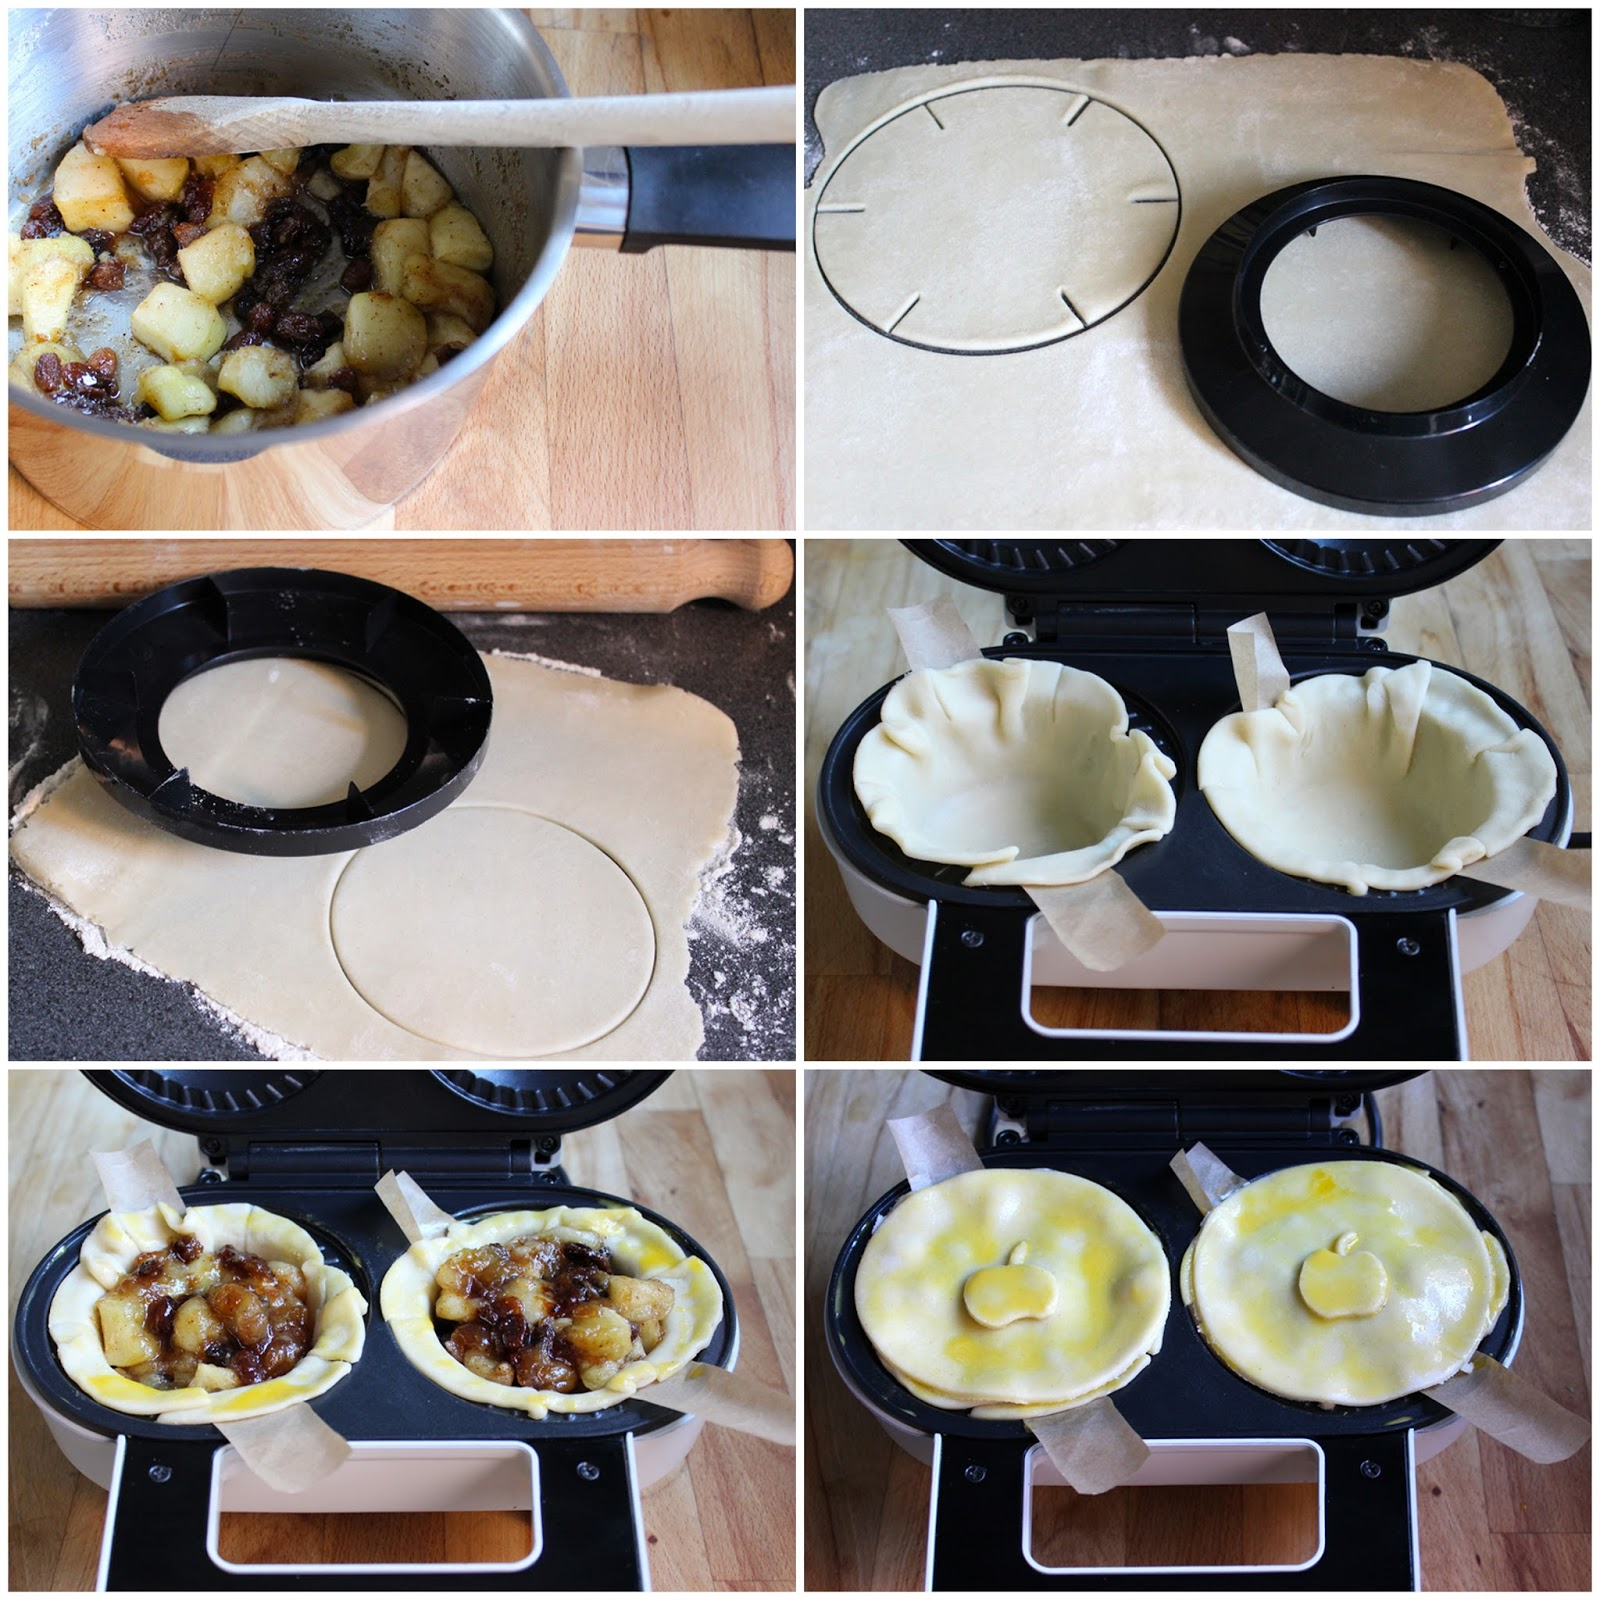 How to use an electric pie maker